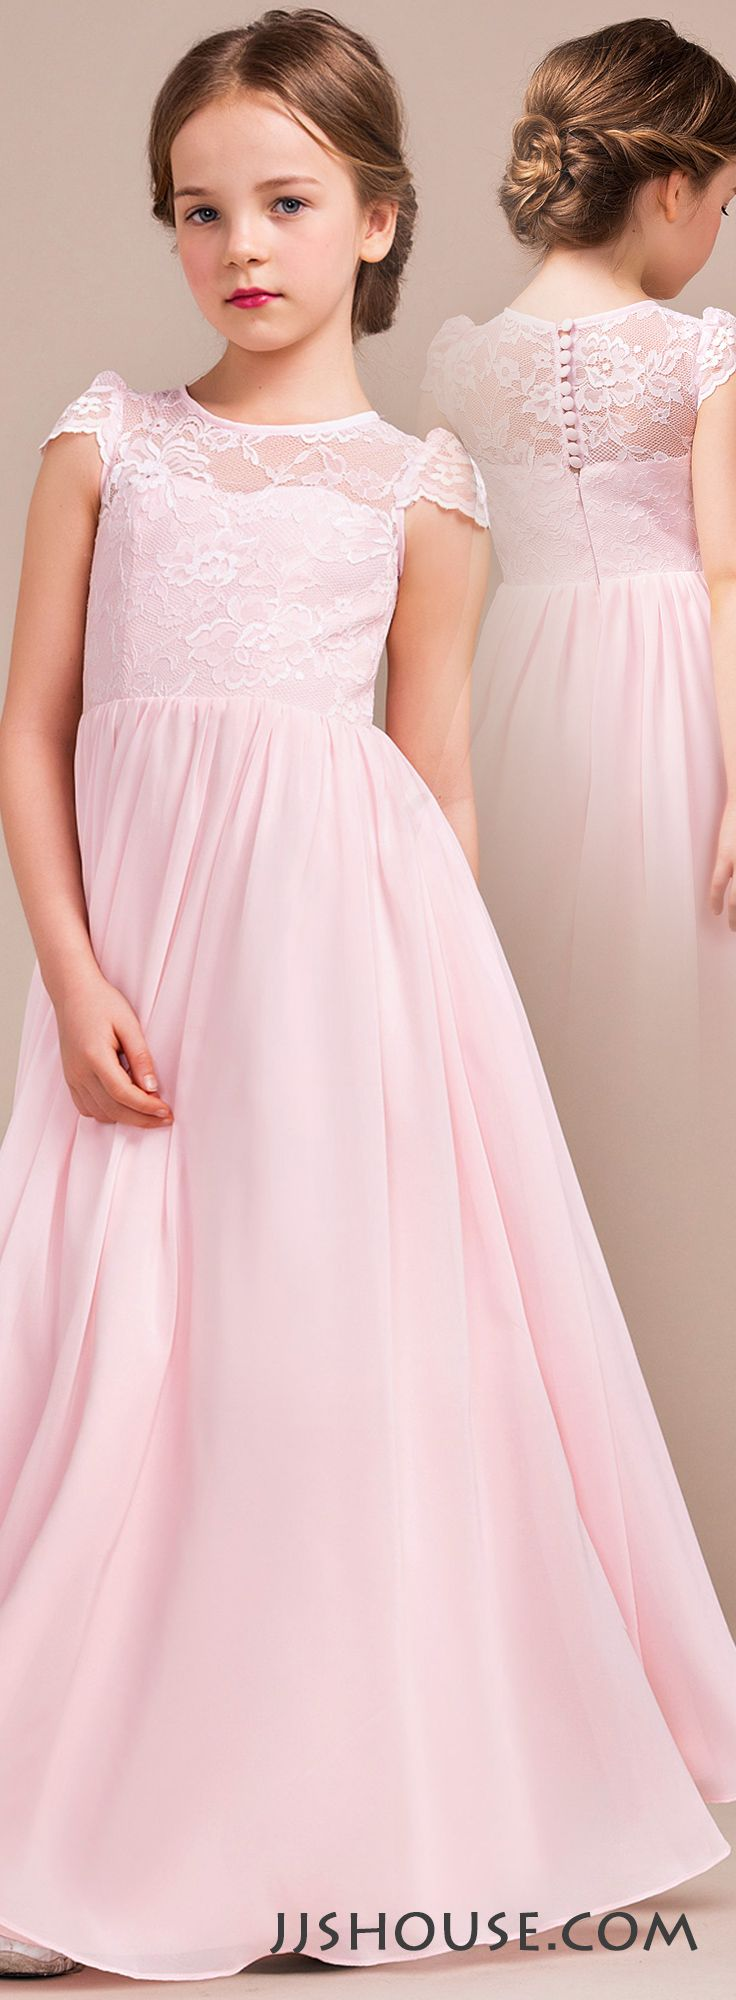 Best 25 junior bridesmaids ideas on pinterest junior bridesmaid sweet junior bridesmaid dress jjshouse ombrellifo Choice Image